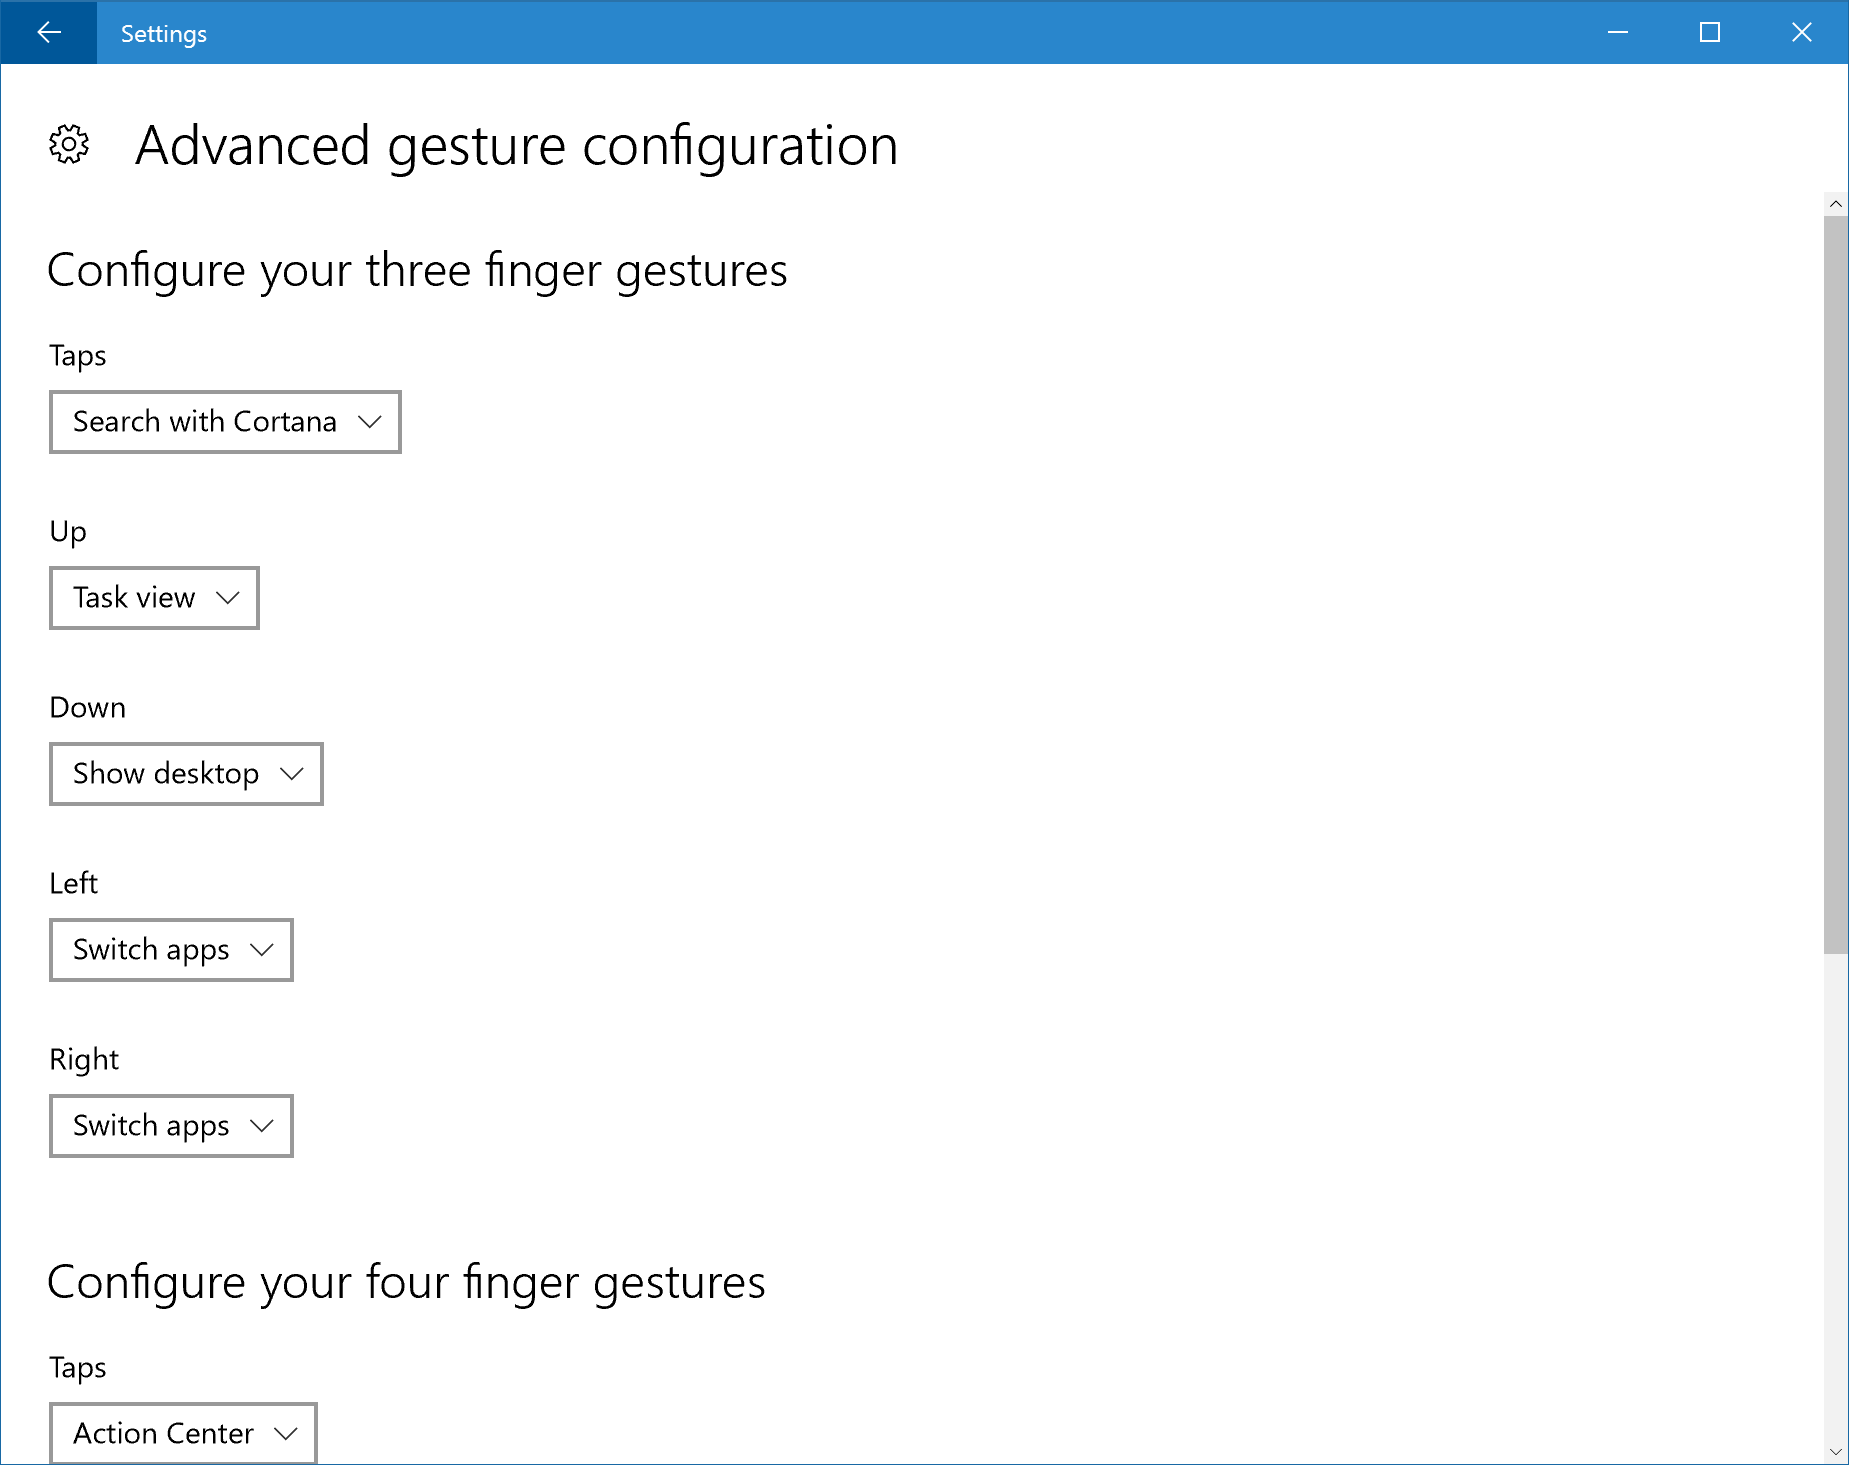 Advanced Gesture Configuration settings page